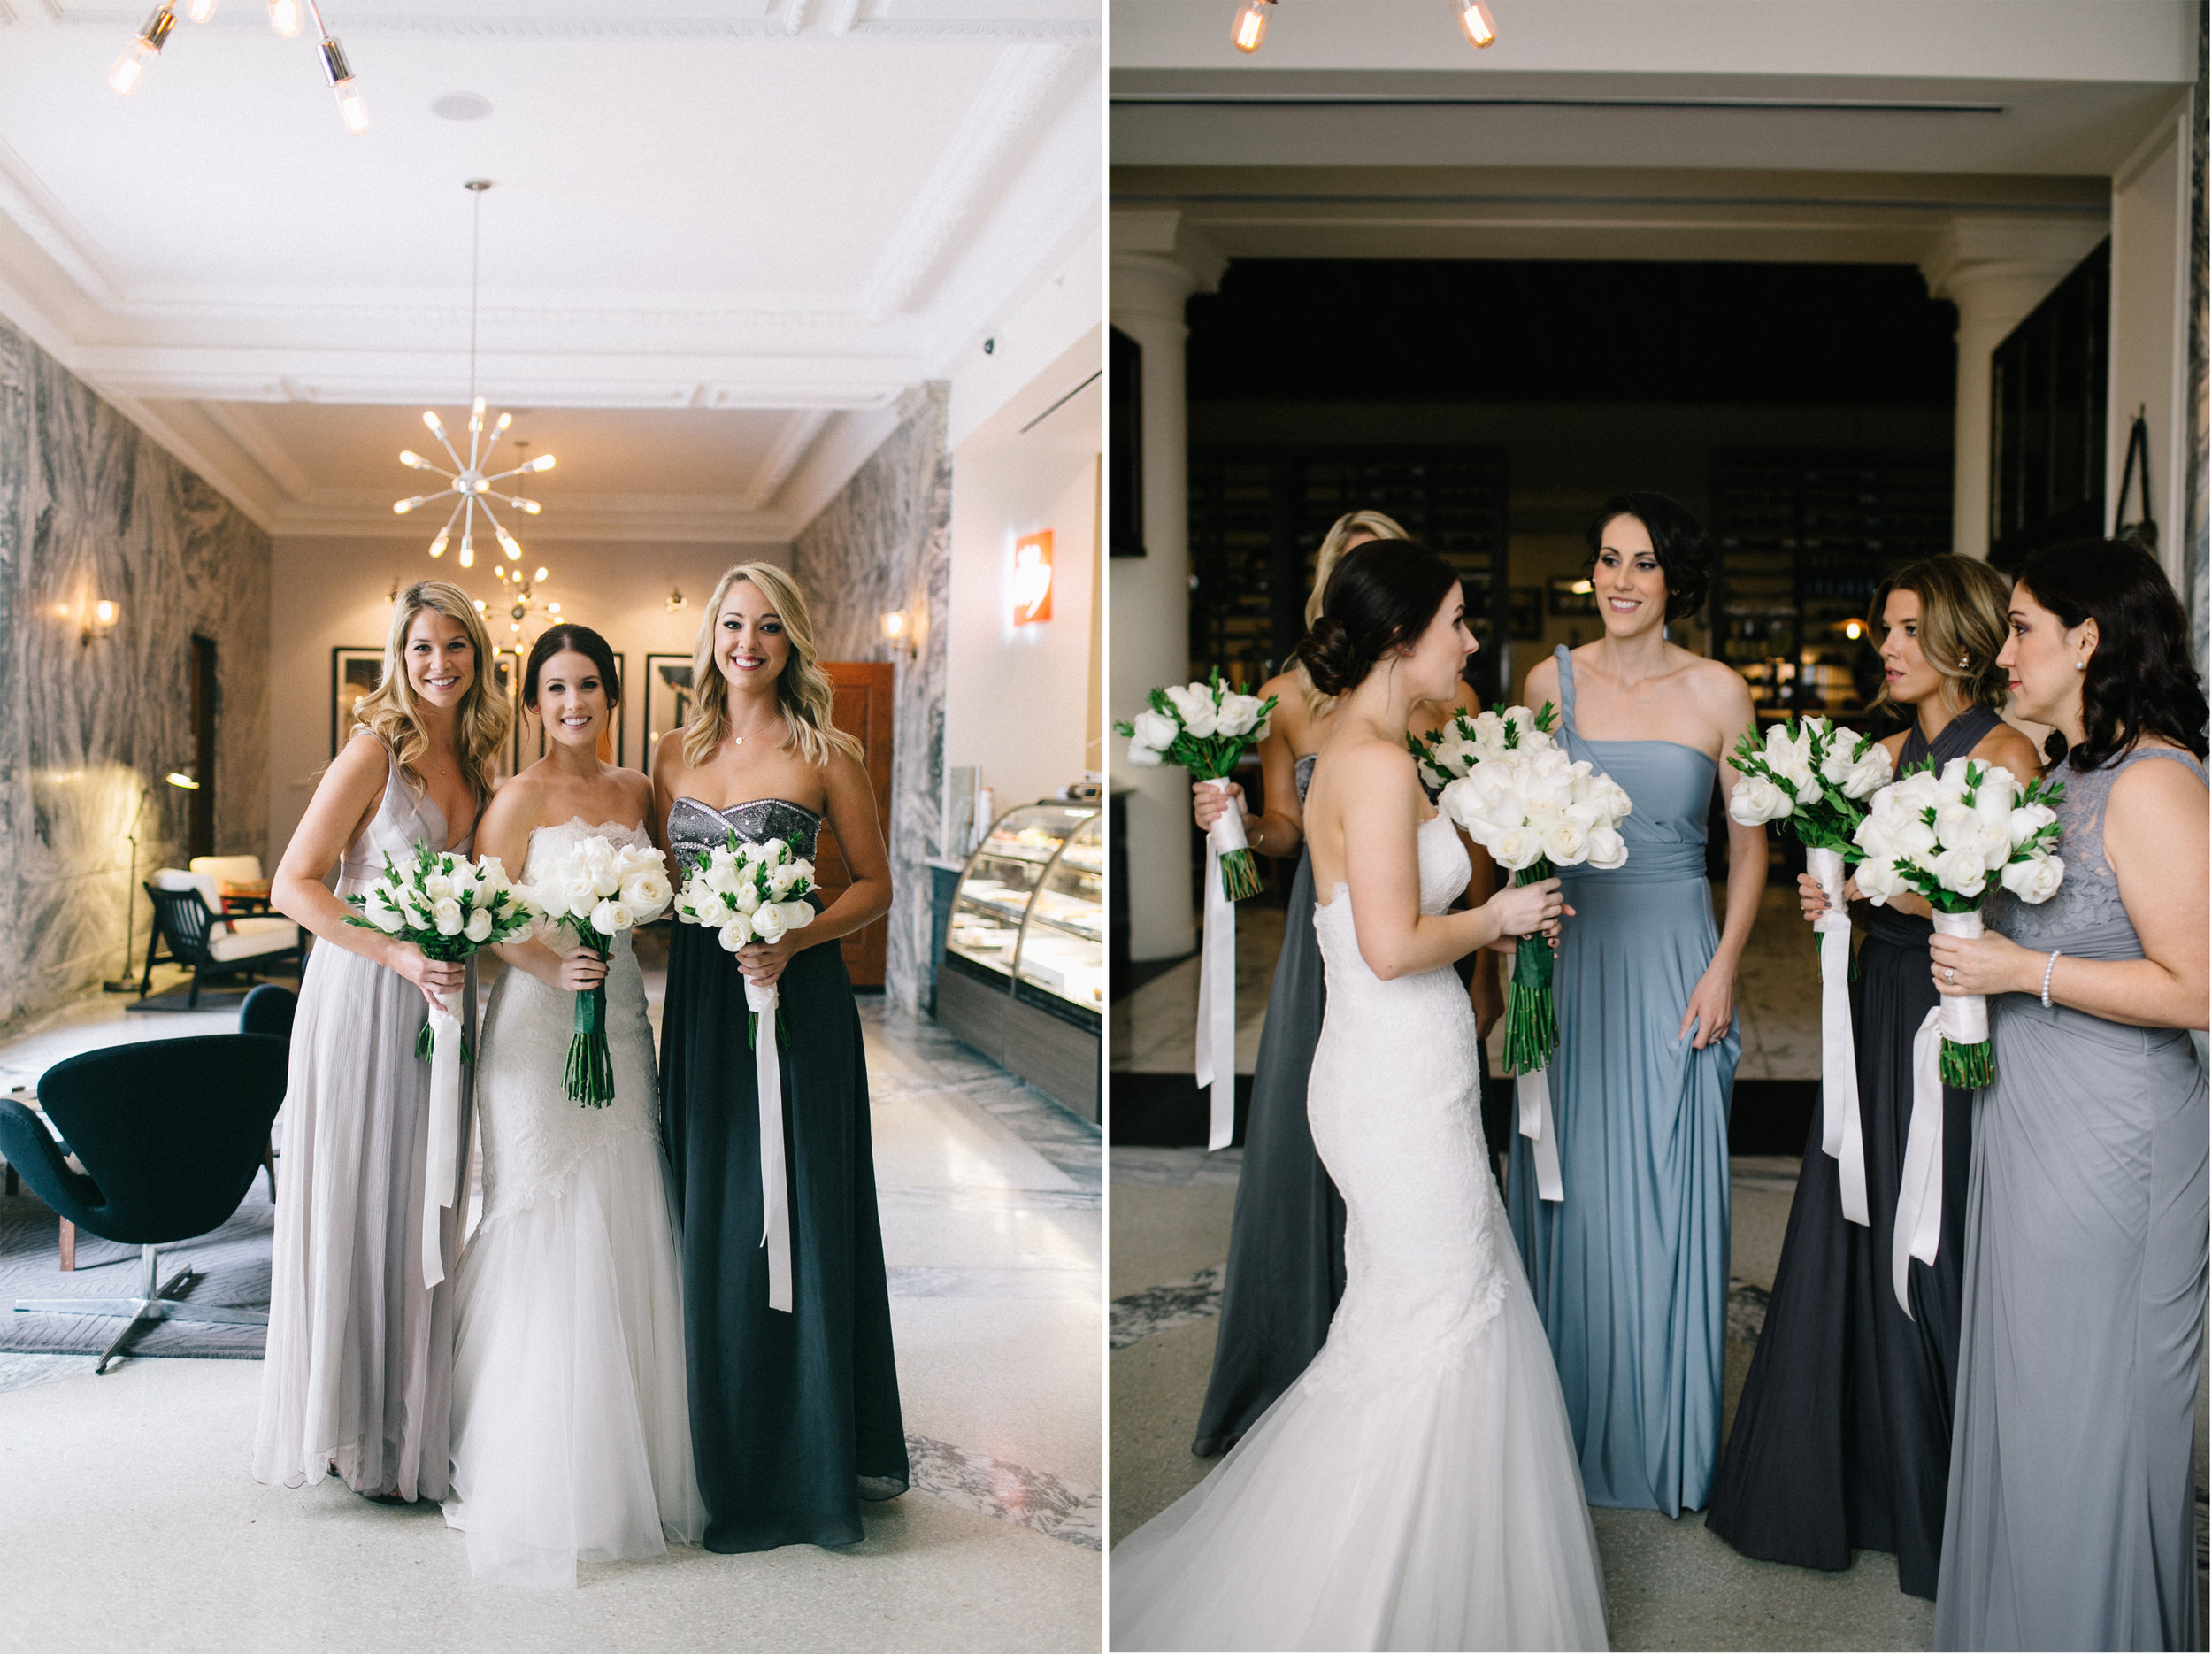 Tampa Industrial wedding at the Rialto Theater_050.jpg